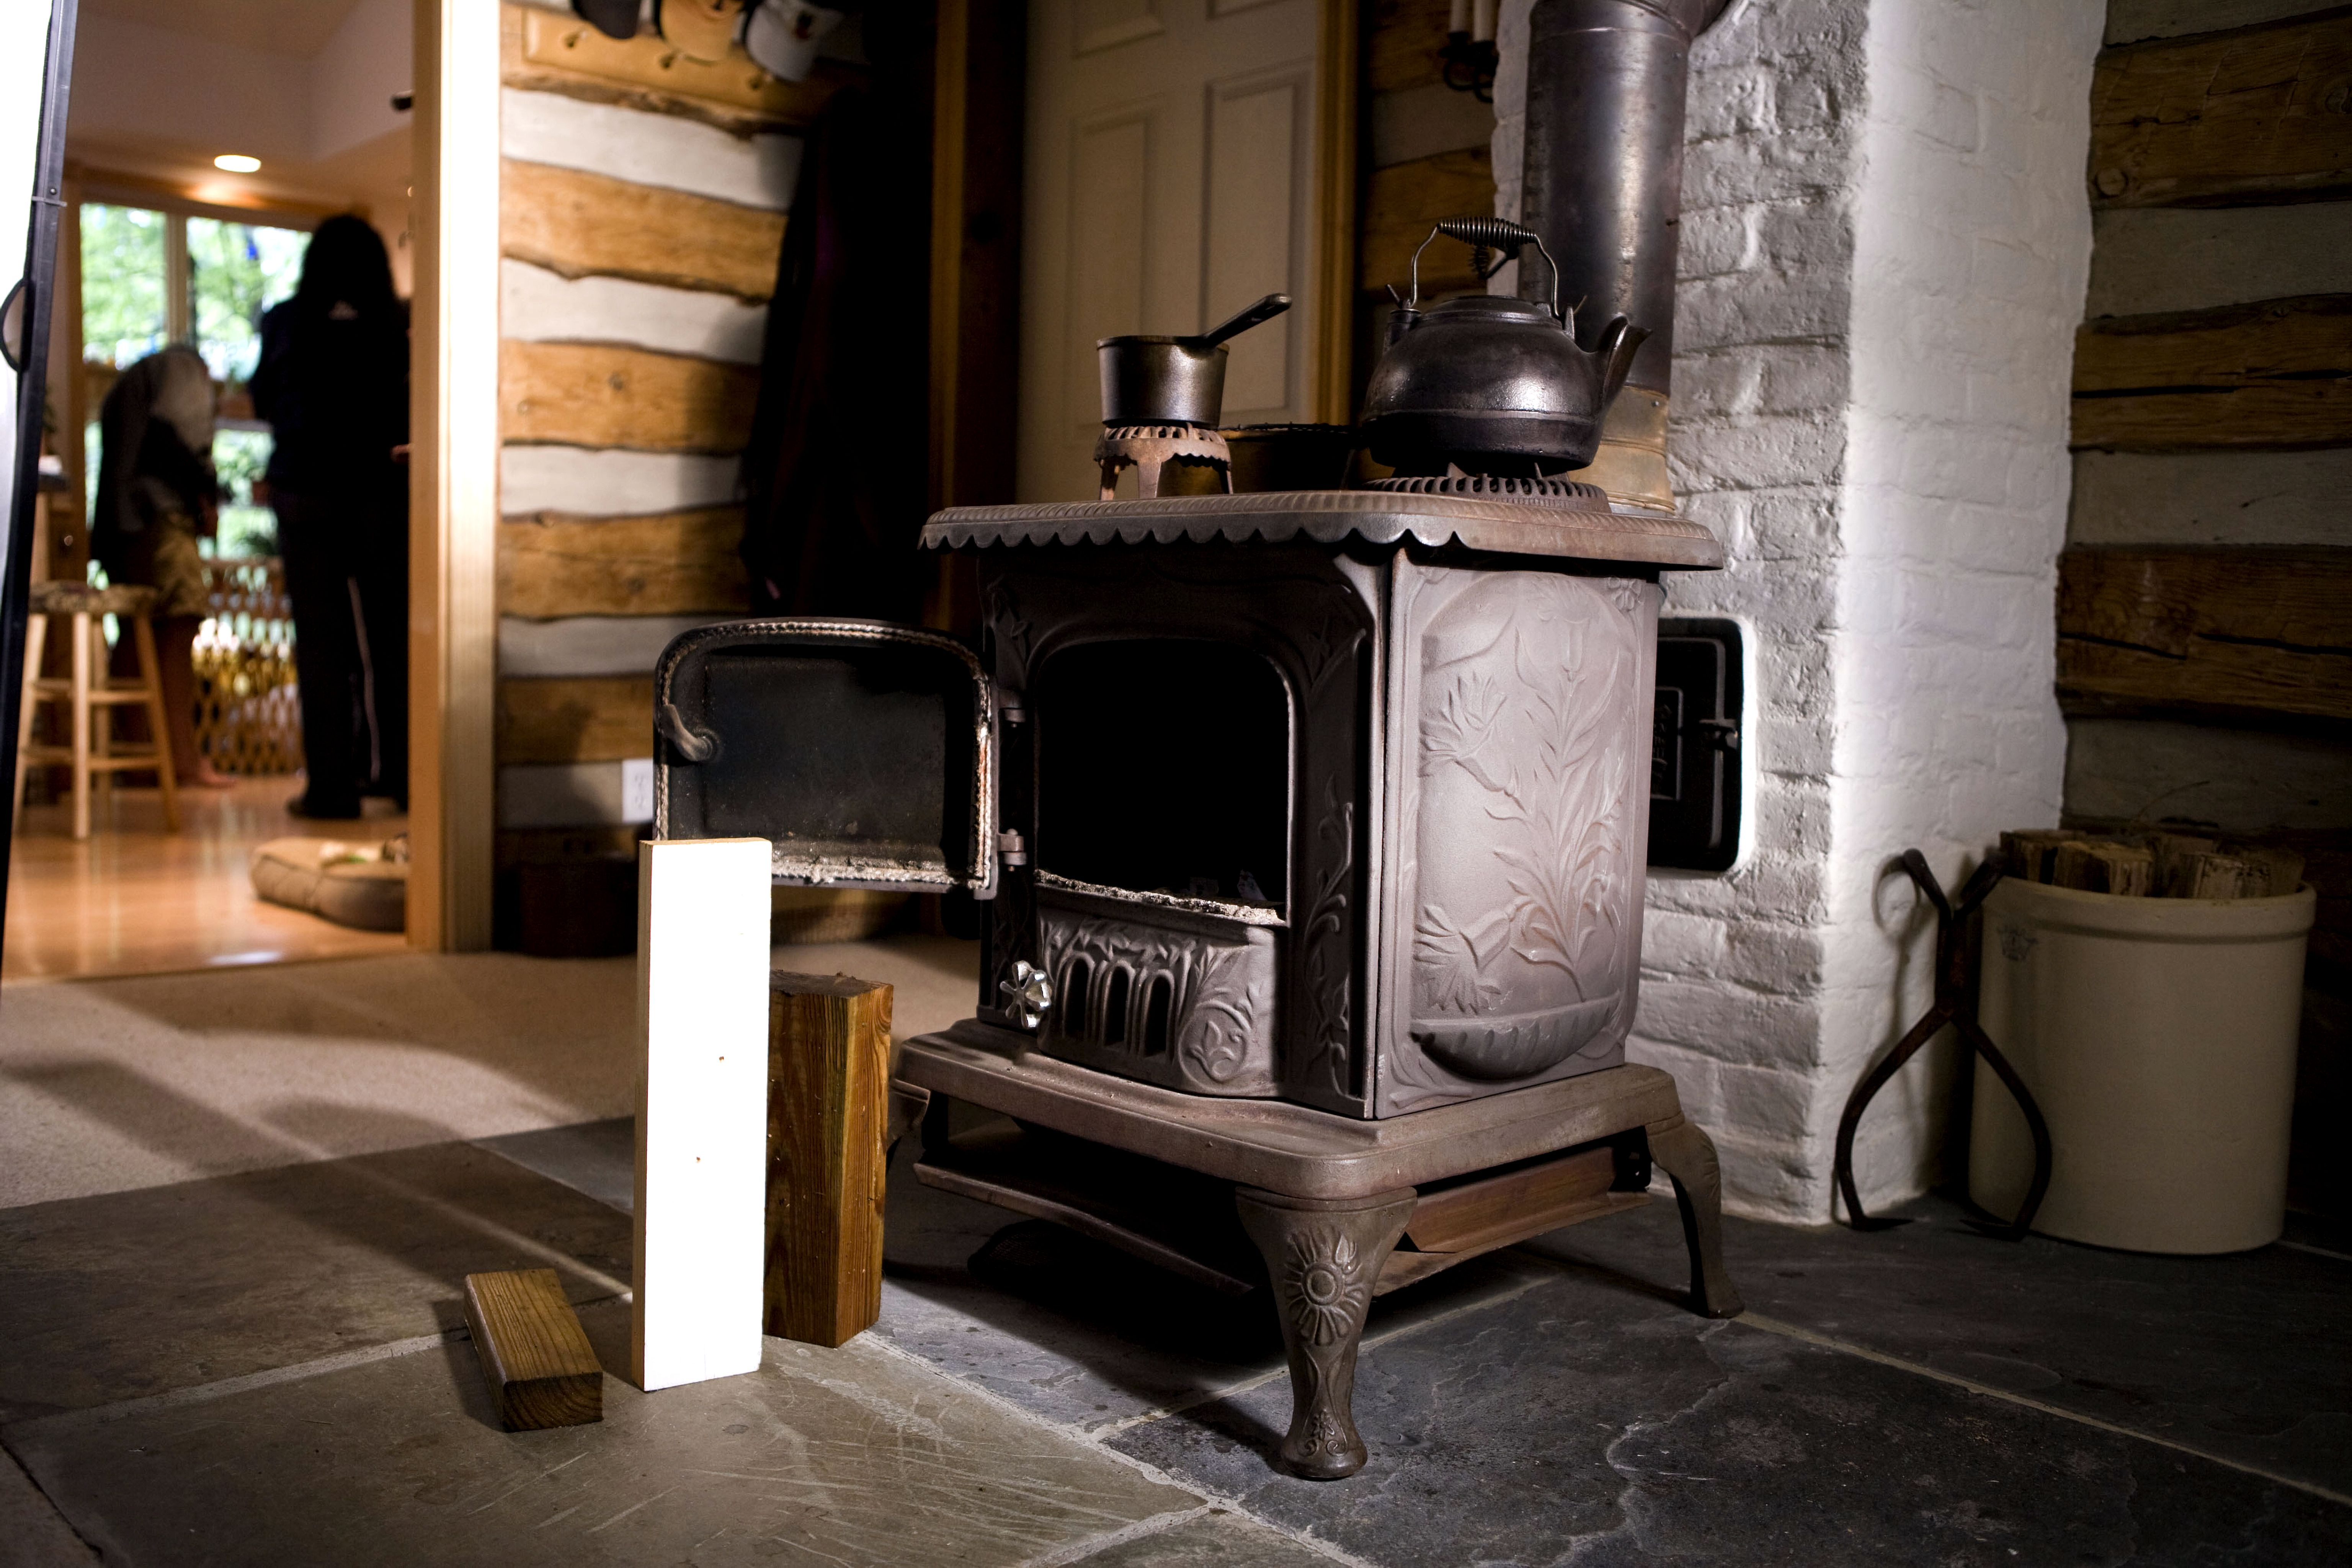 Free Picture Unique Old Cast Iron Stove Wood Coal Room